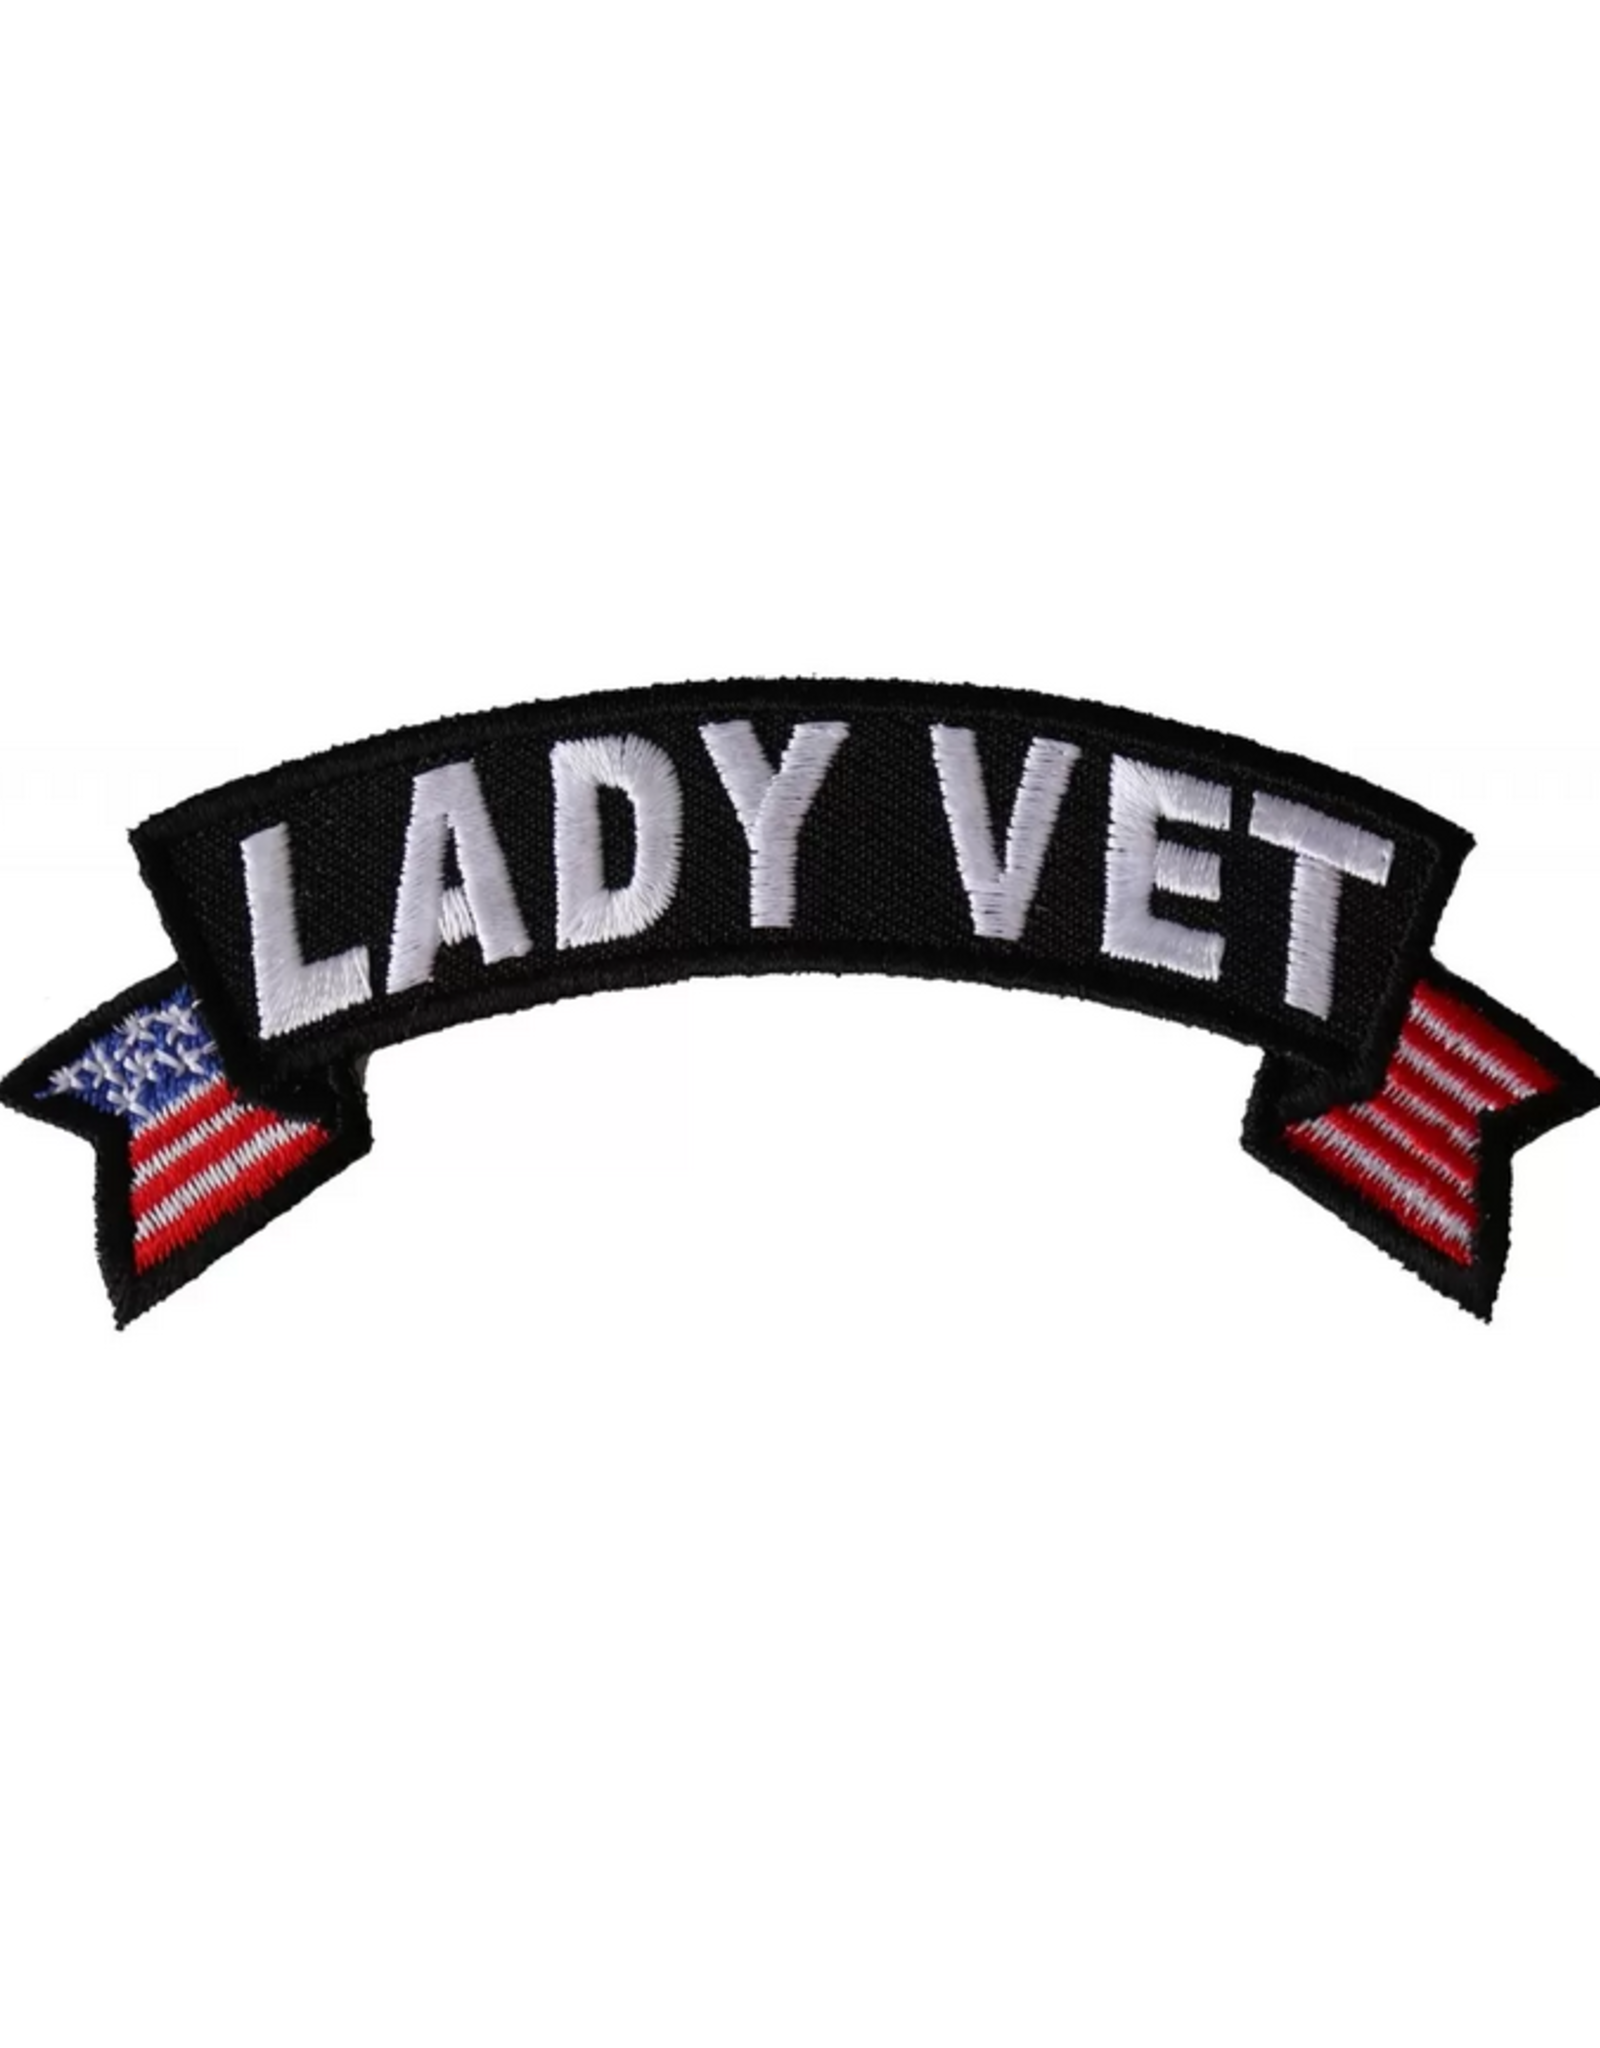 """MidMil Embroidered Lady Vet Tab Patch w/ USA tails 4"""" wide x 1.5"""" high"""